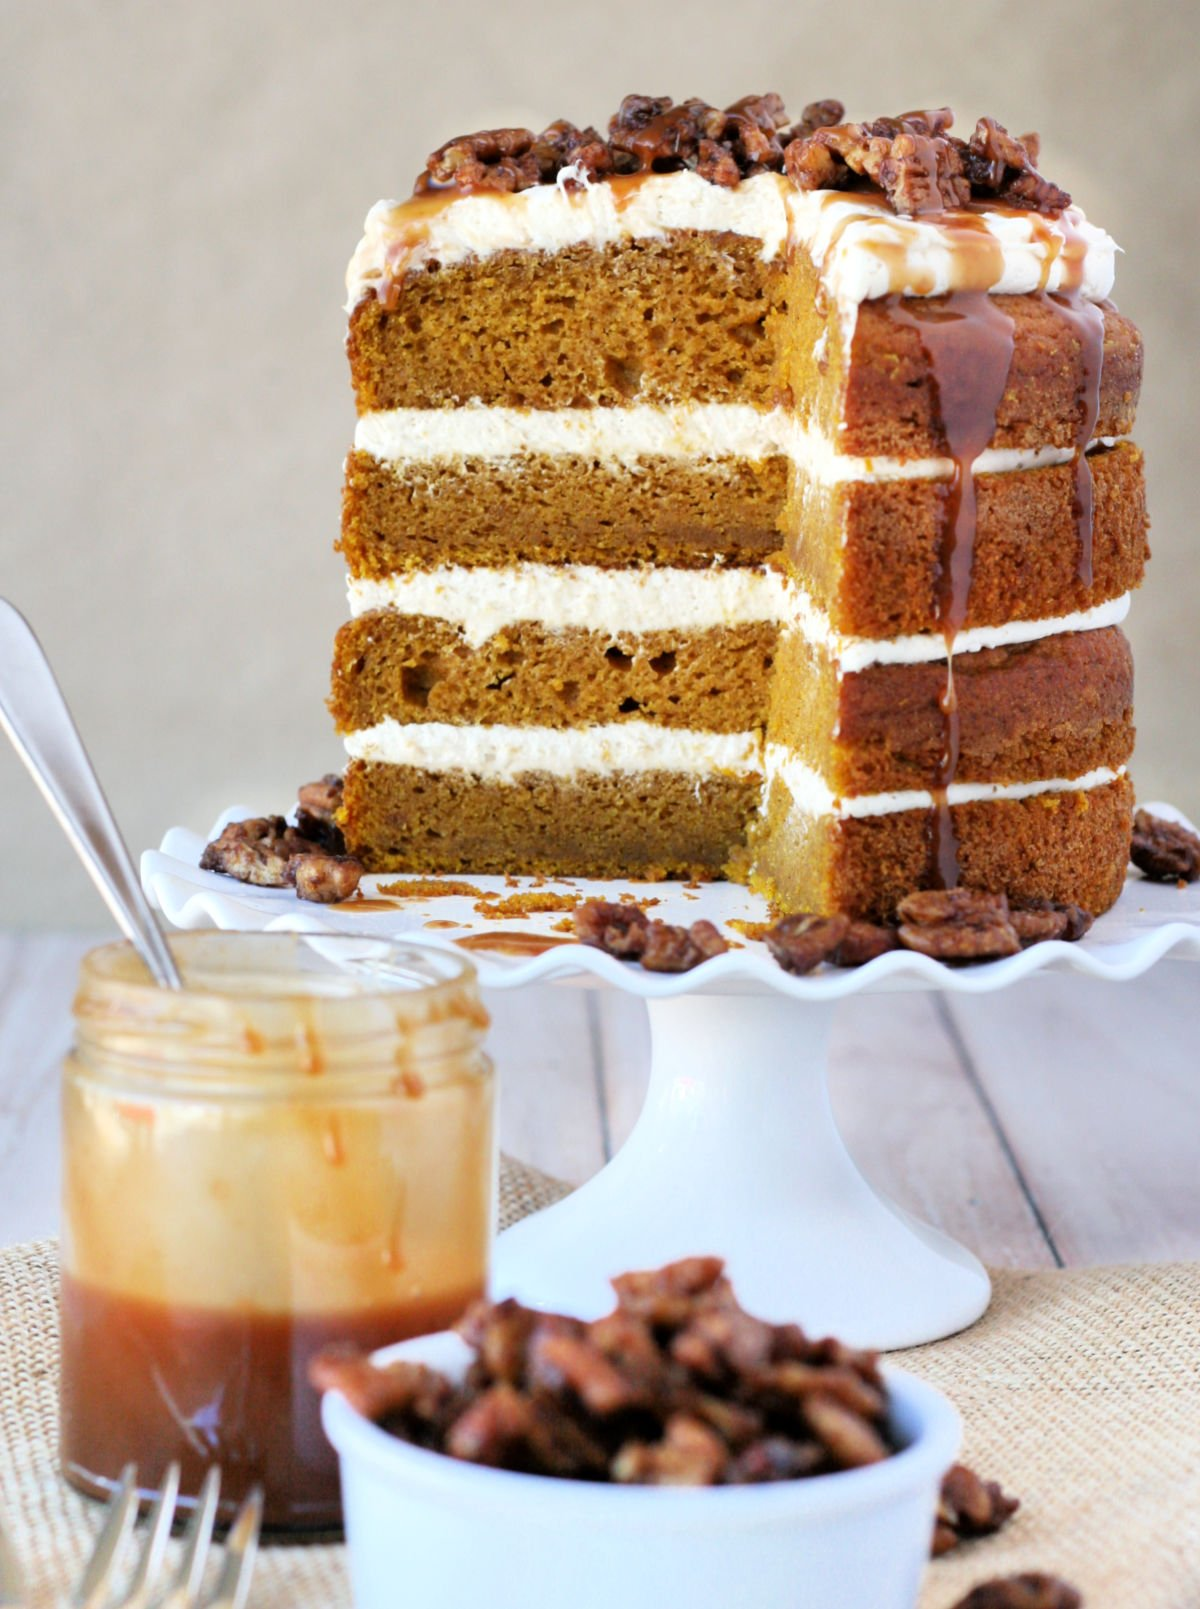 interior of pumpkin cake shown on white cake stand with slice removed